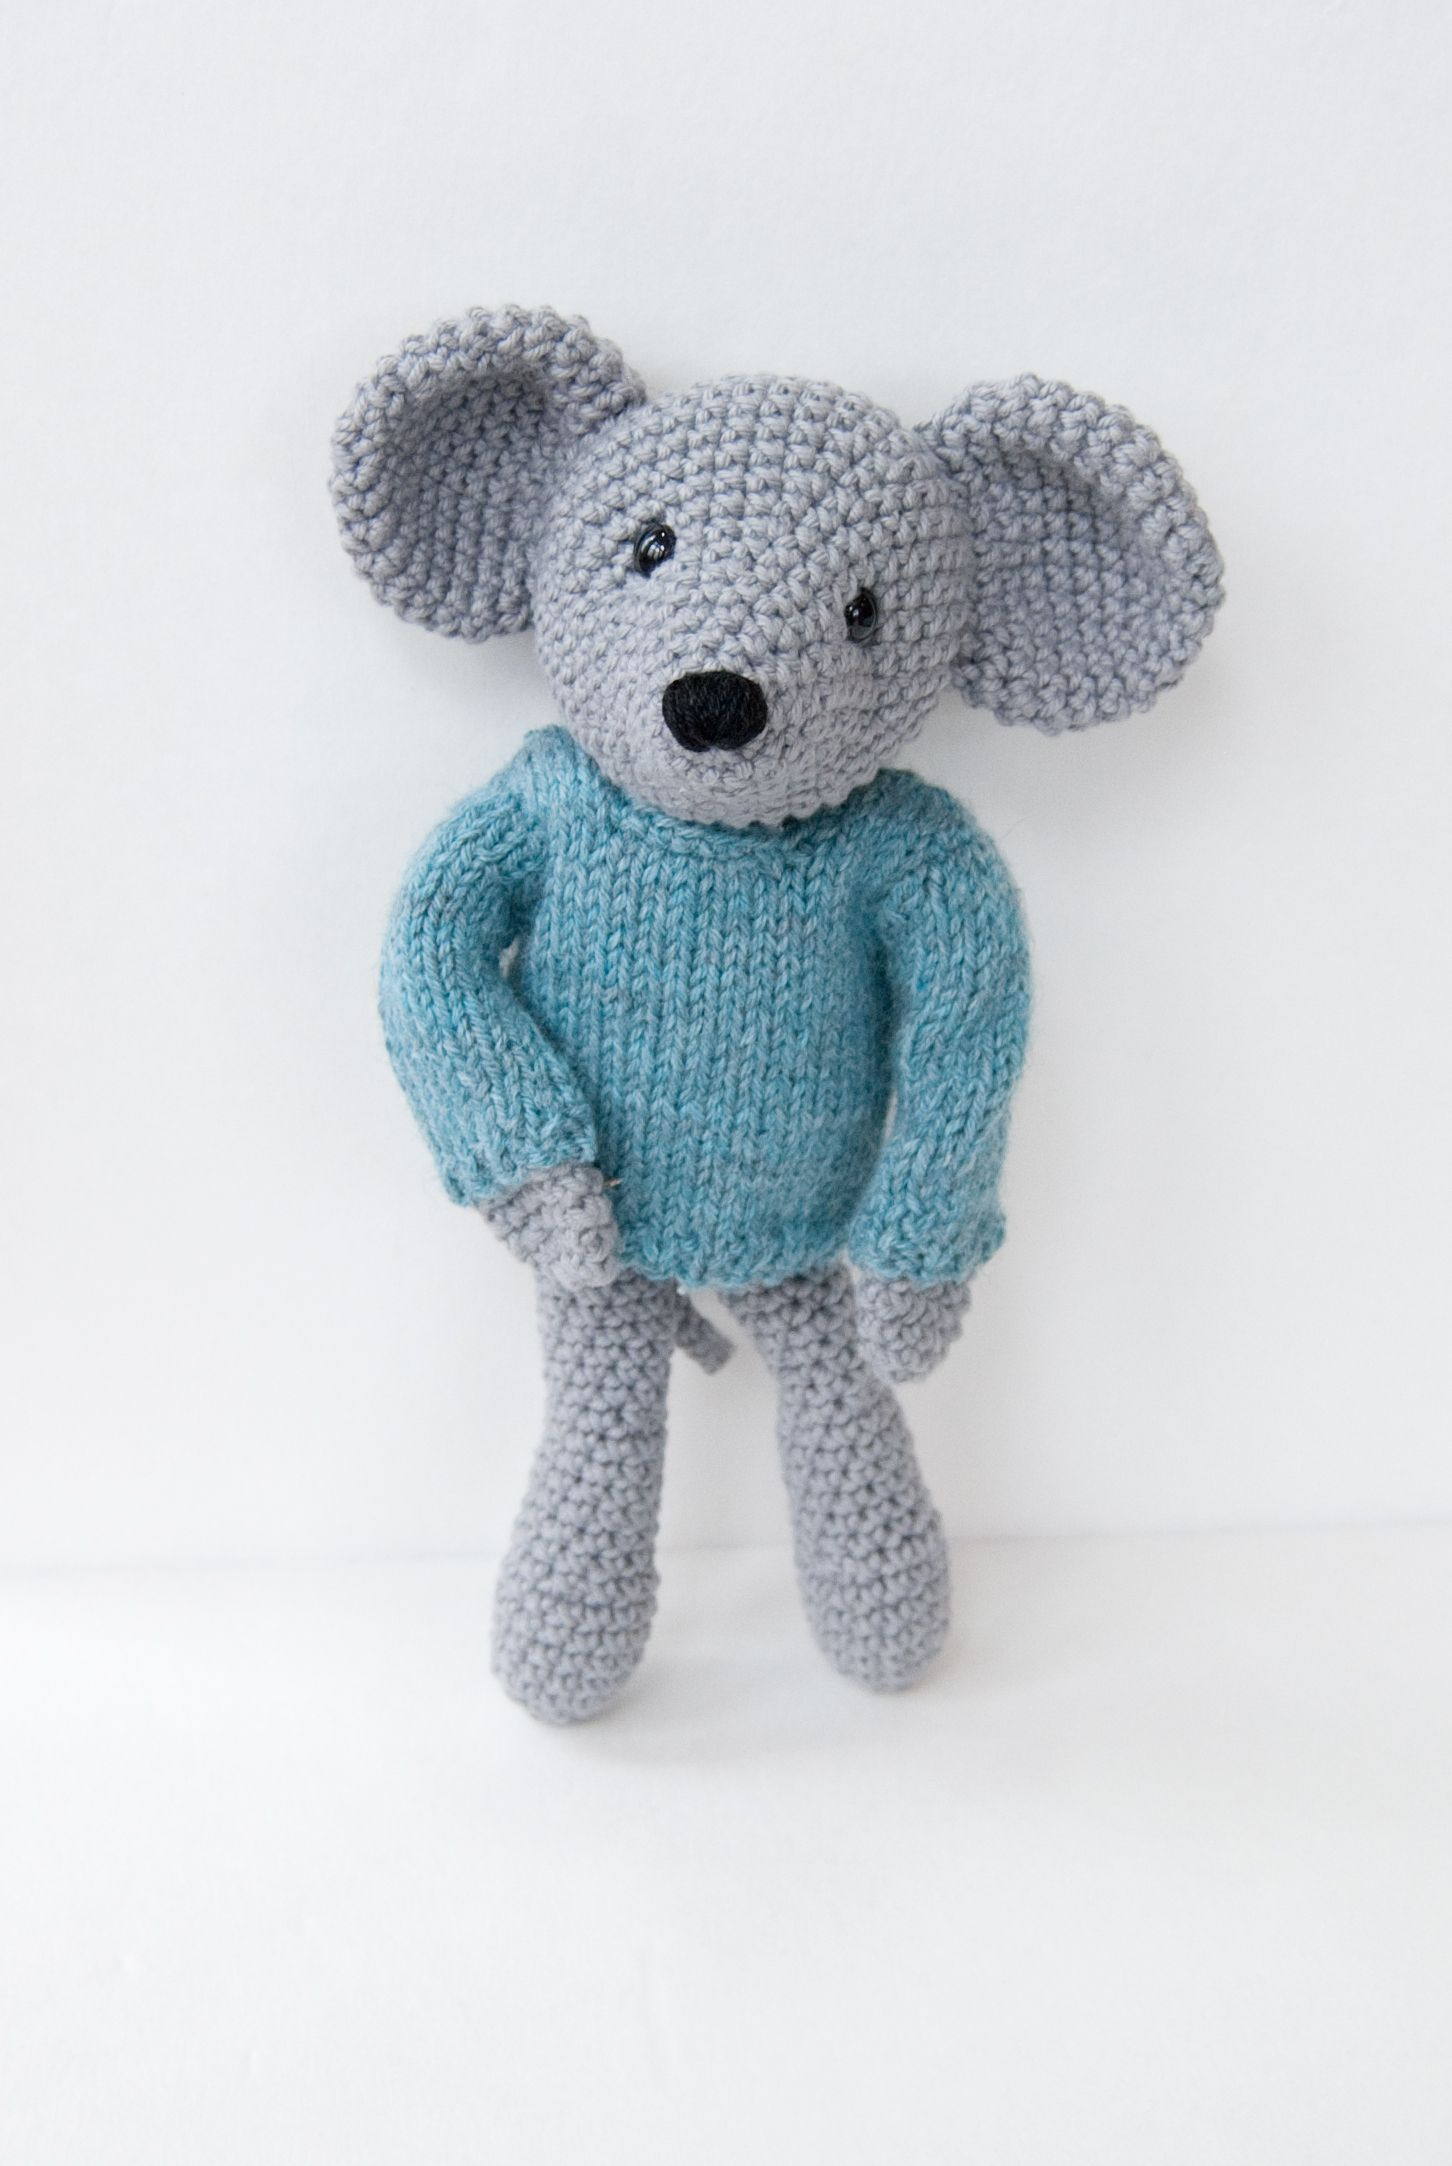 Mouse Pattern - Knitting Patterns and Crochet Patterns from ...